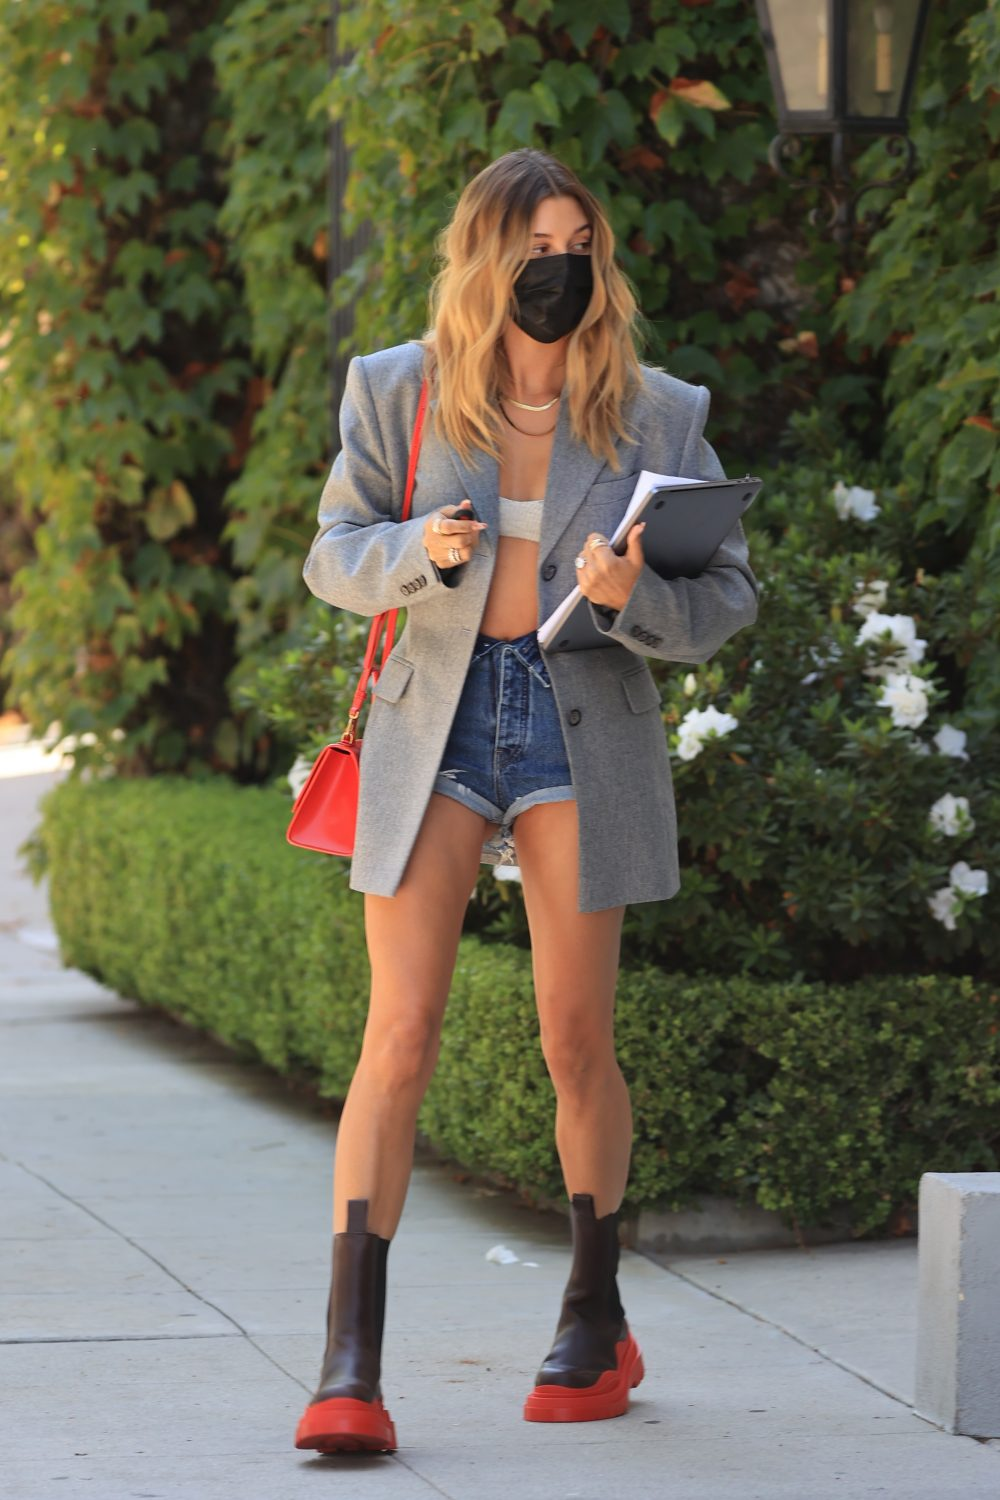 Hailey Bieber rock huge boots with a business attire